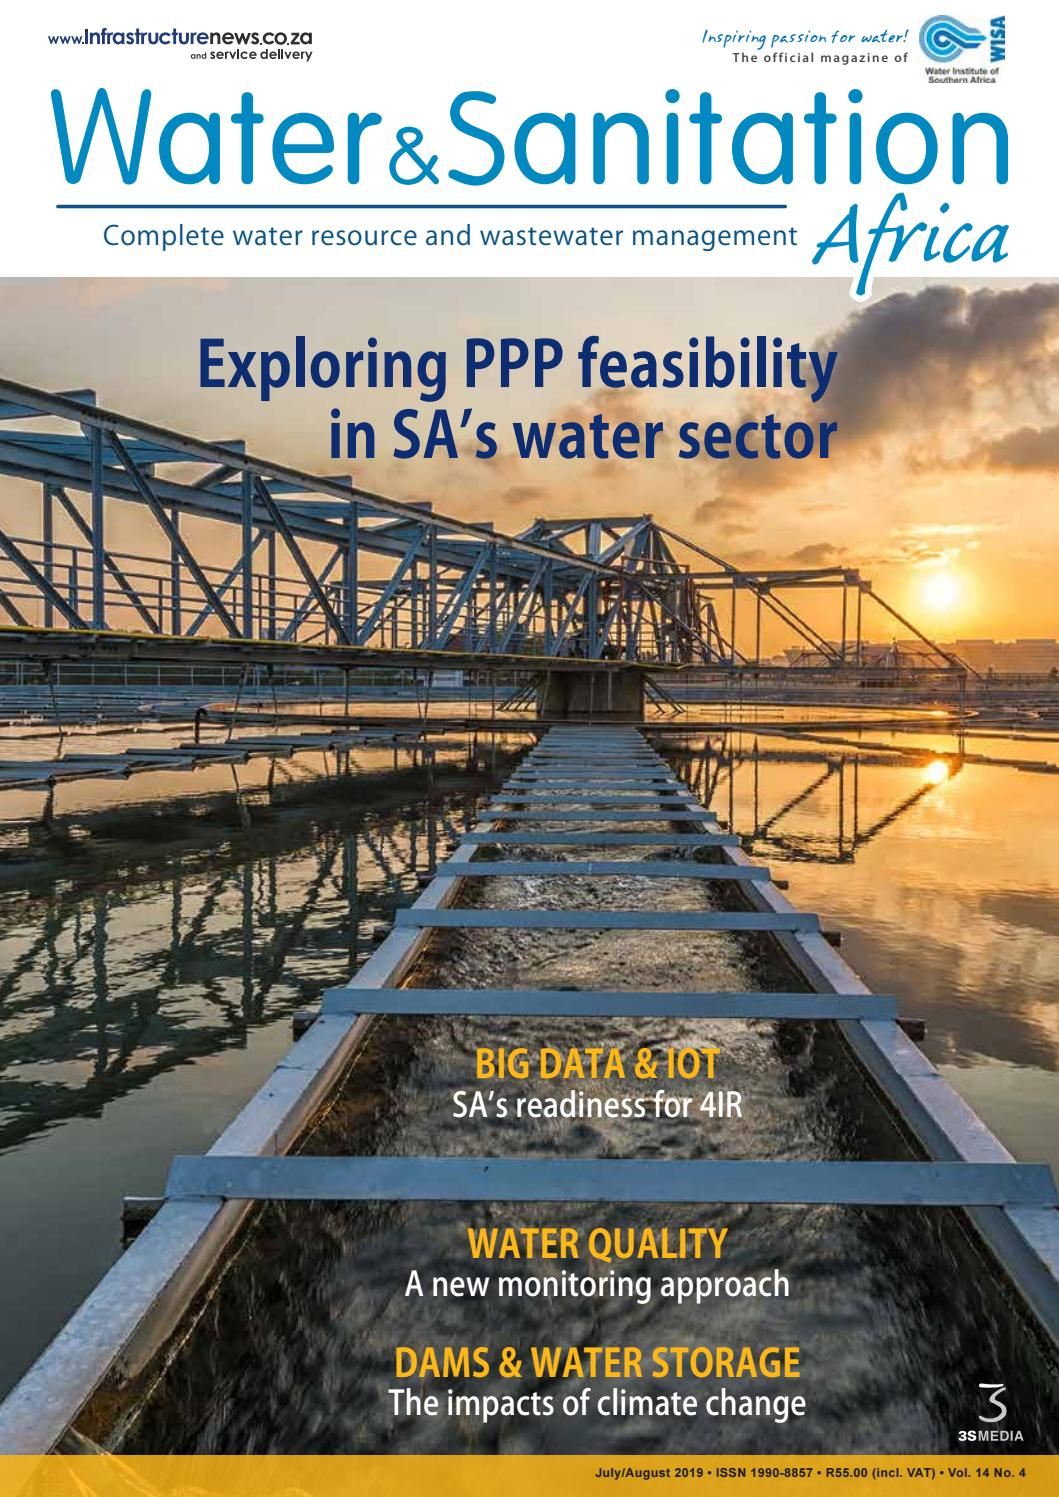 Water&Sanitation Africa July/August 2019 by 3S Media - issuu